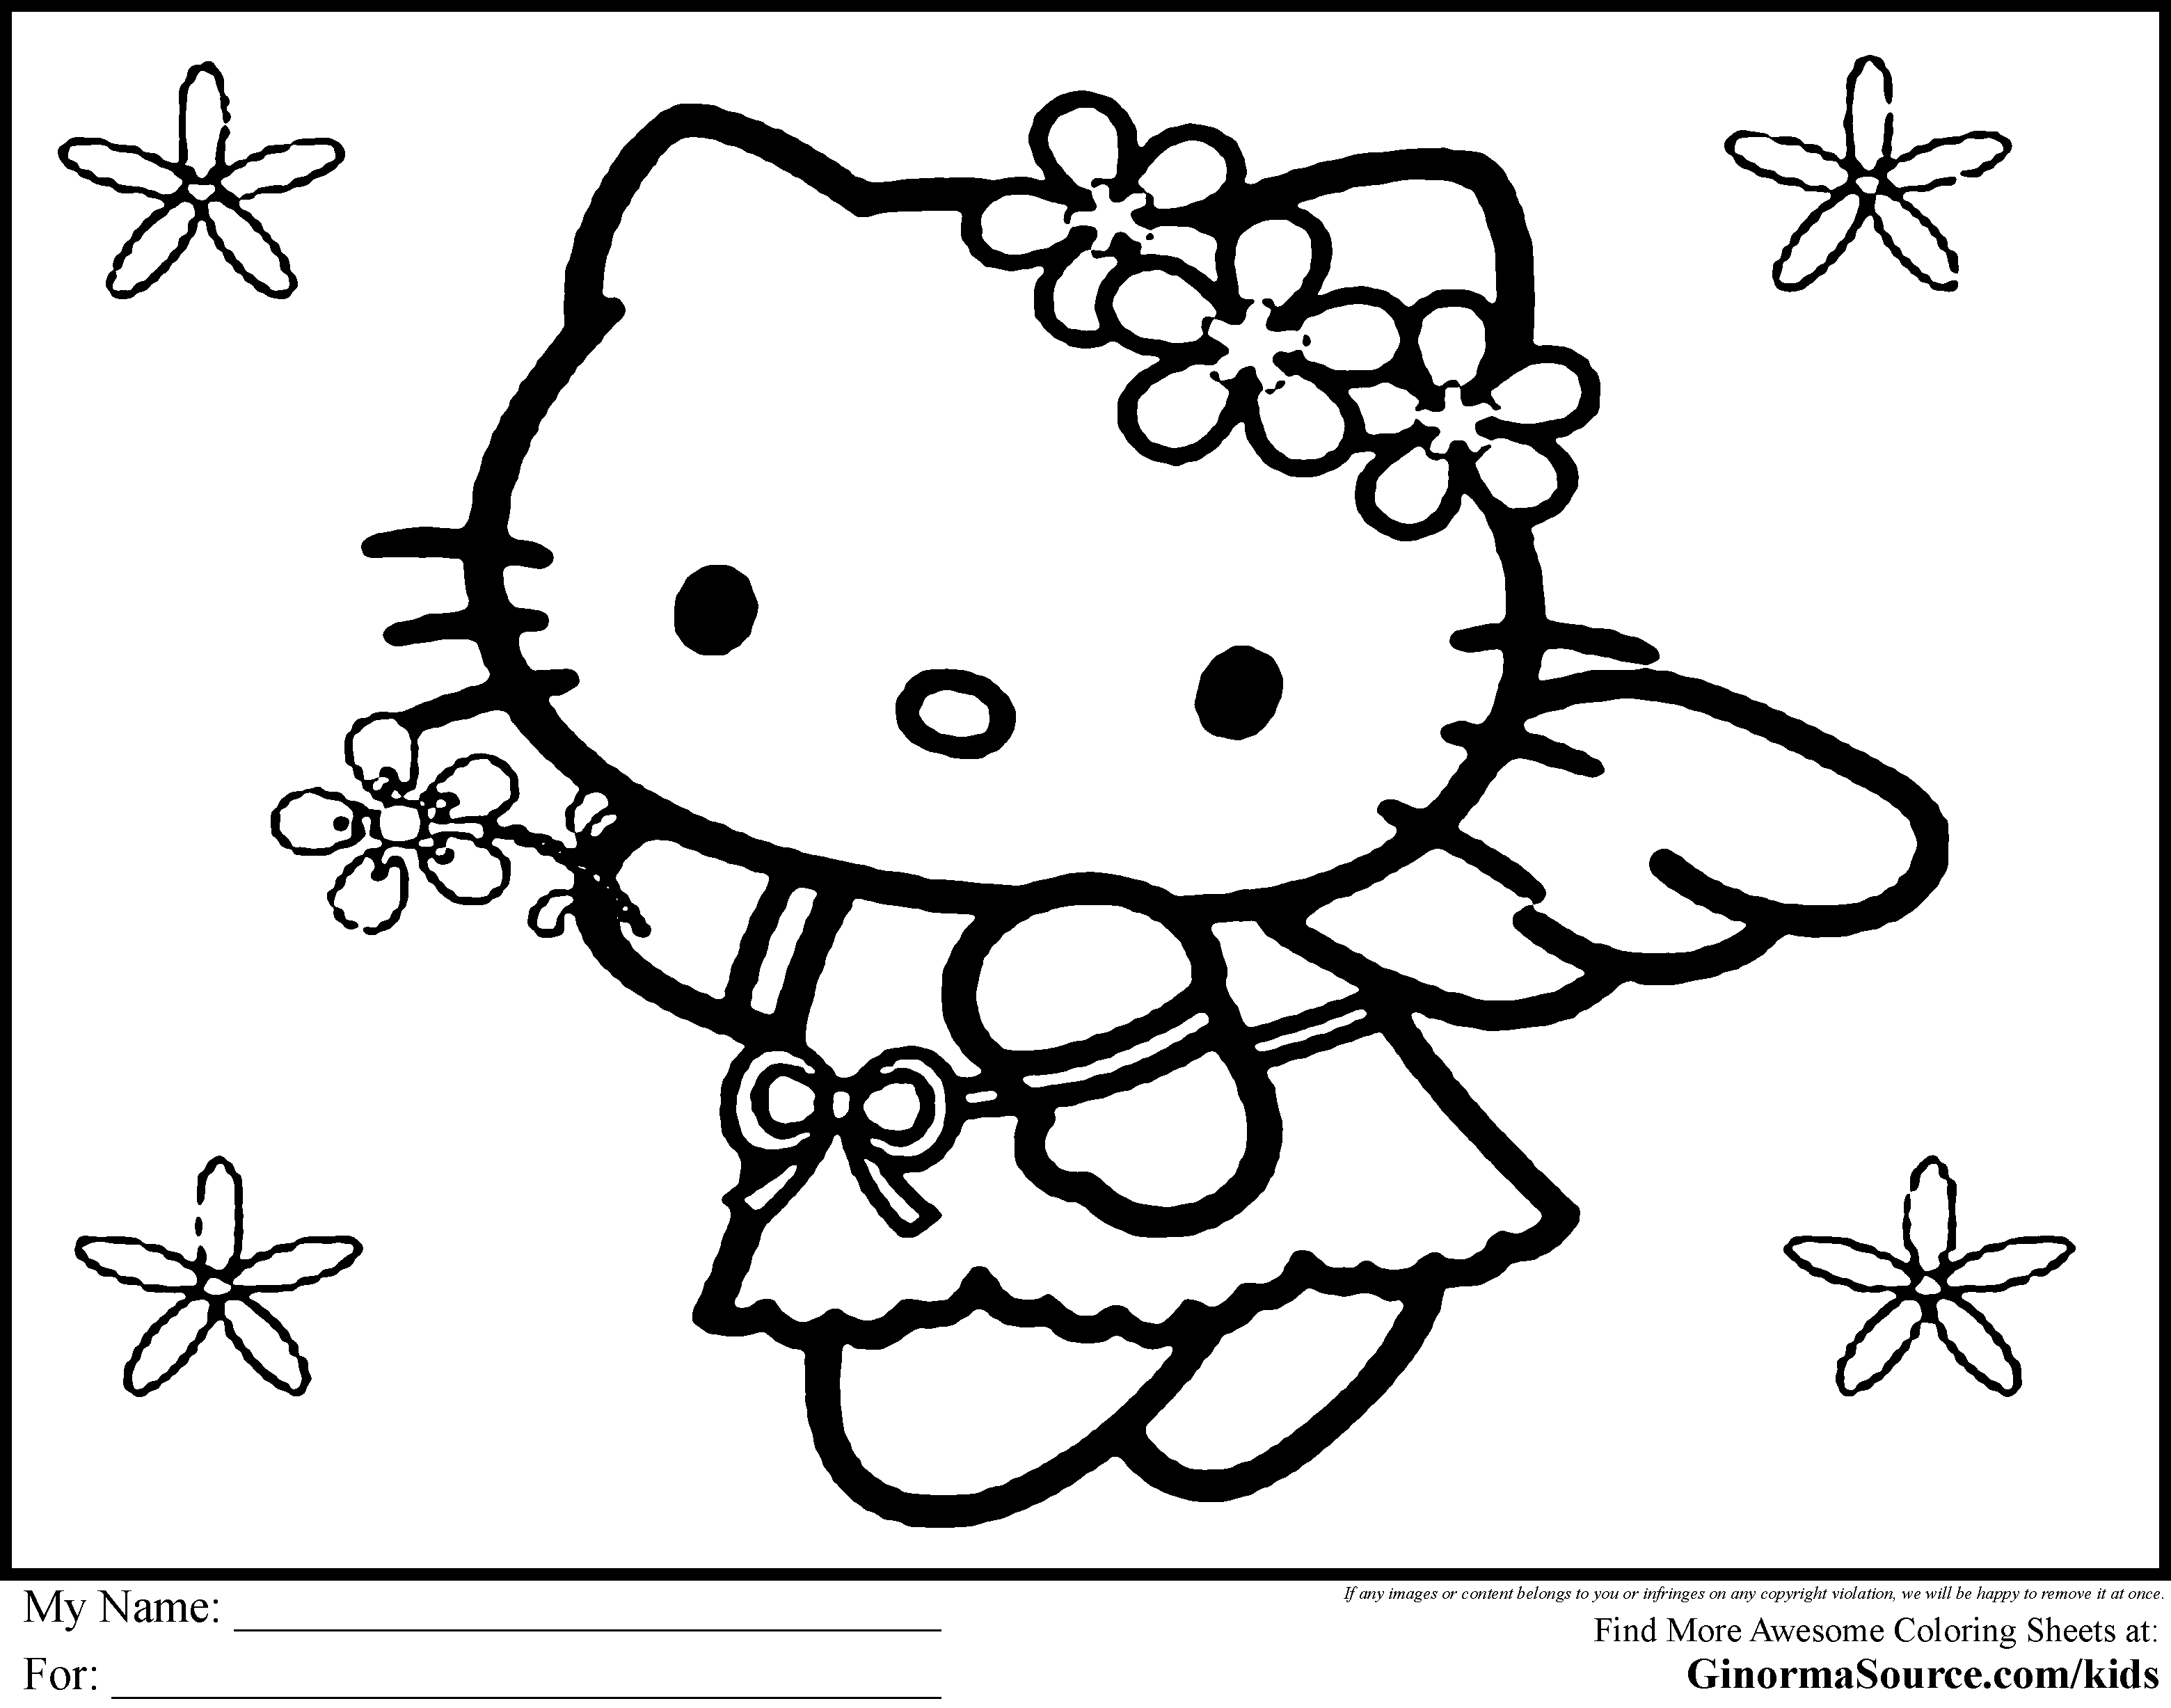 Printable coloring pages awesome name - Hello Kitty Christmas Coloring Pages Hello Kitty Christmas Coloring Pages Ginormasource Kids